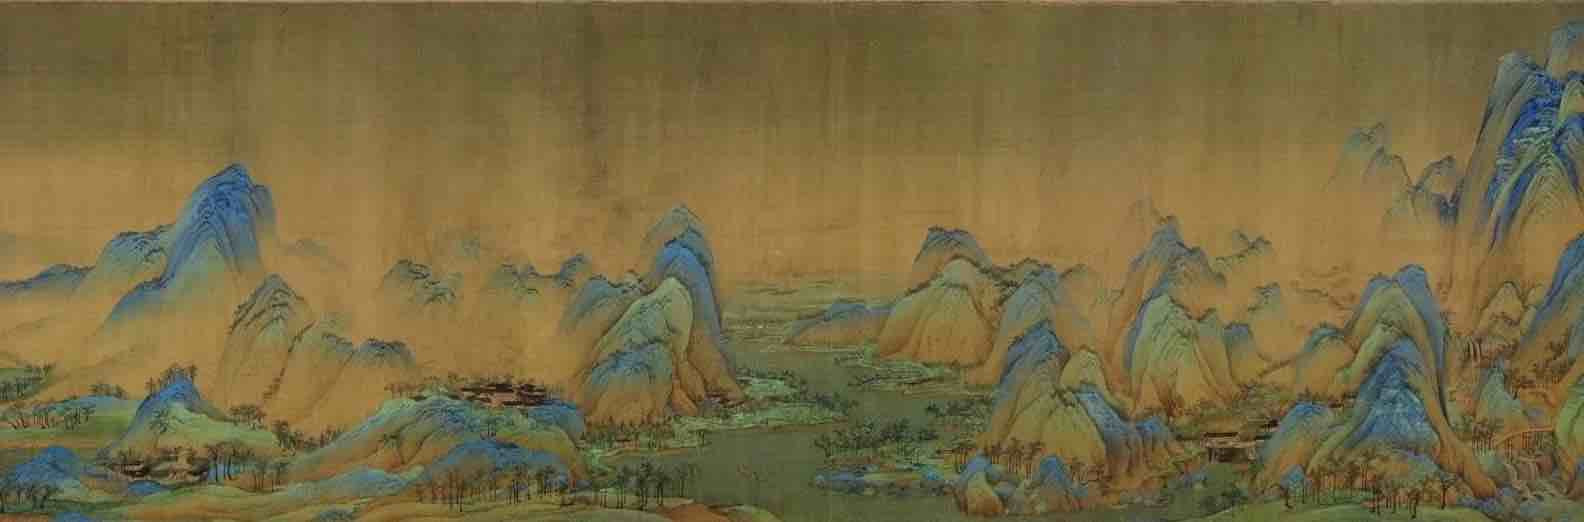 Painting Thousands Miles of Mountains and Rivers (Qian Li Jiang Shan Tu), by Artist Wang Ximeng of the Song Dynasty, Part 3